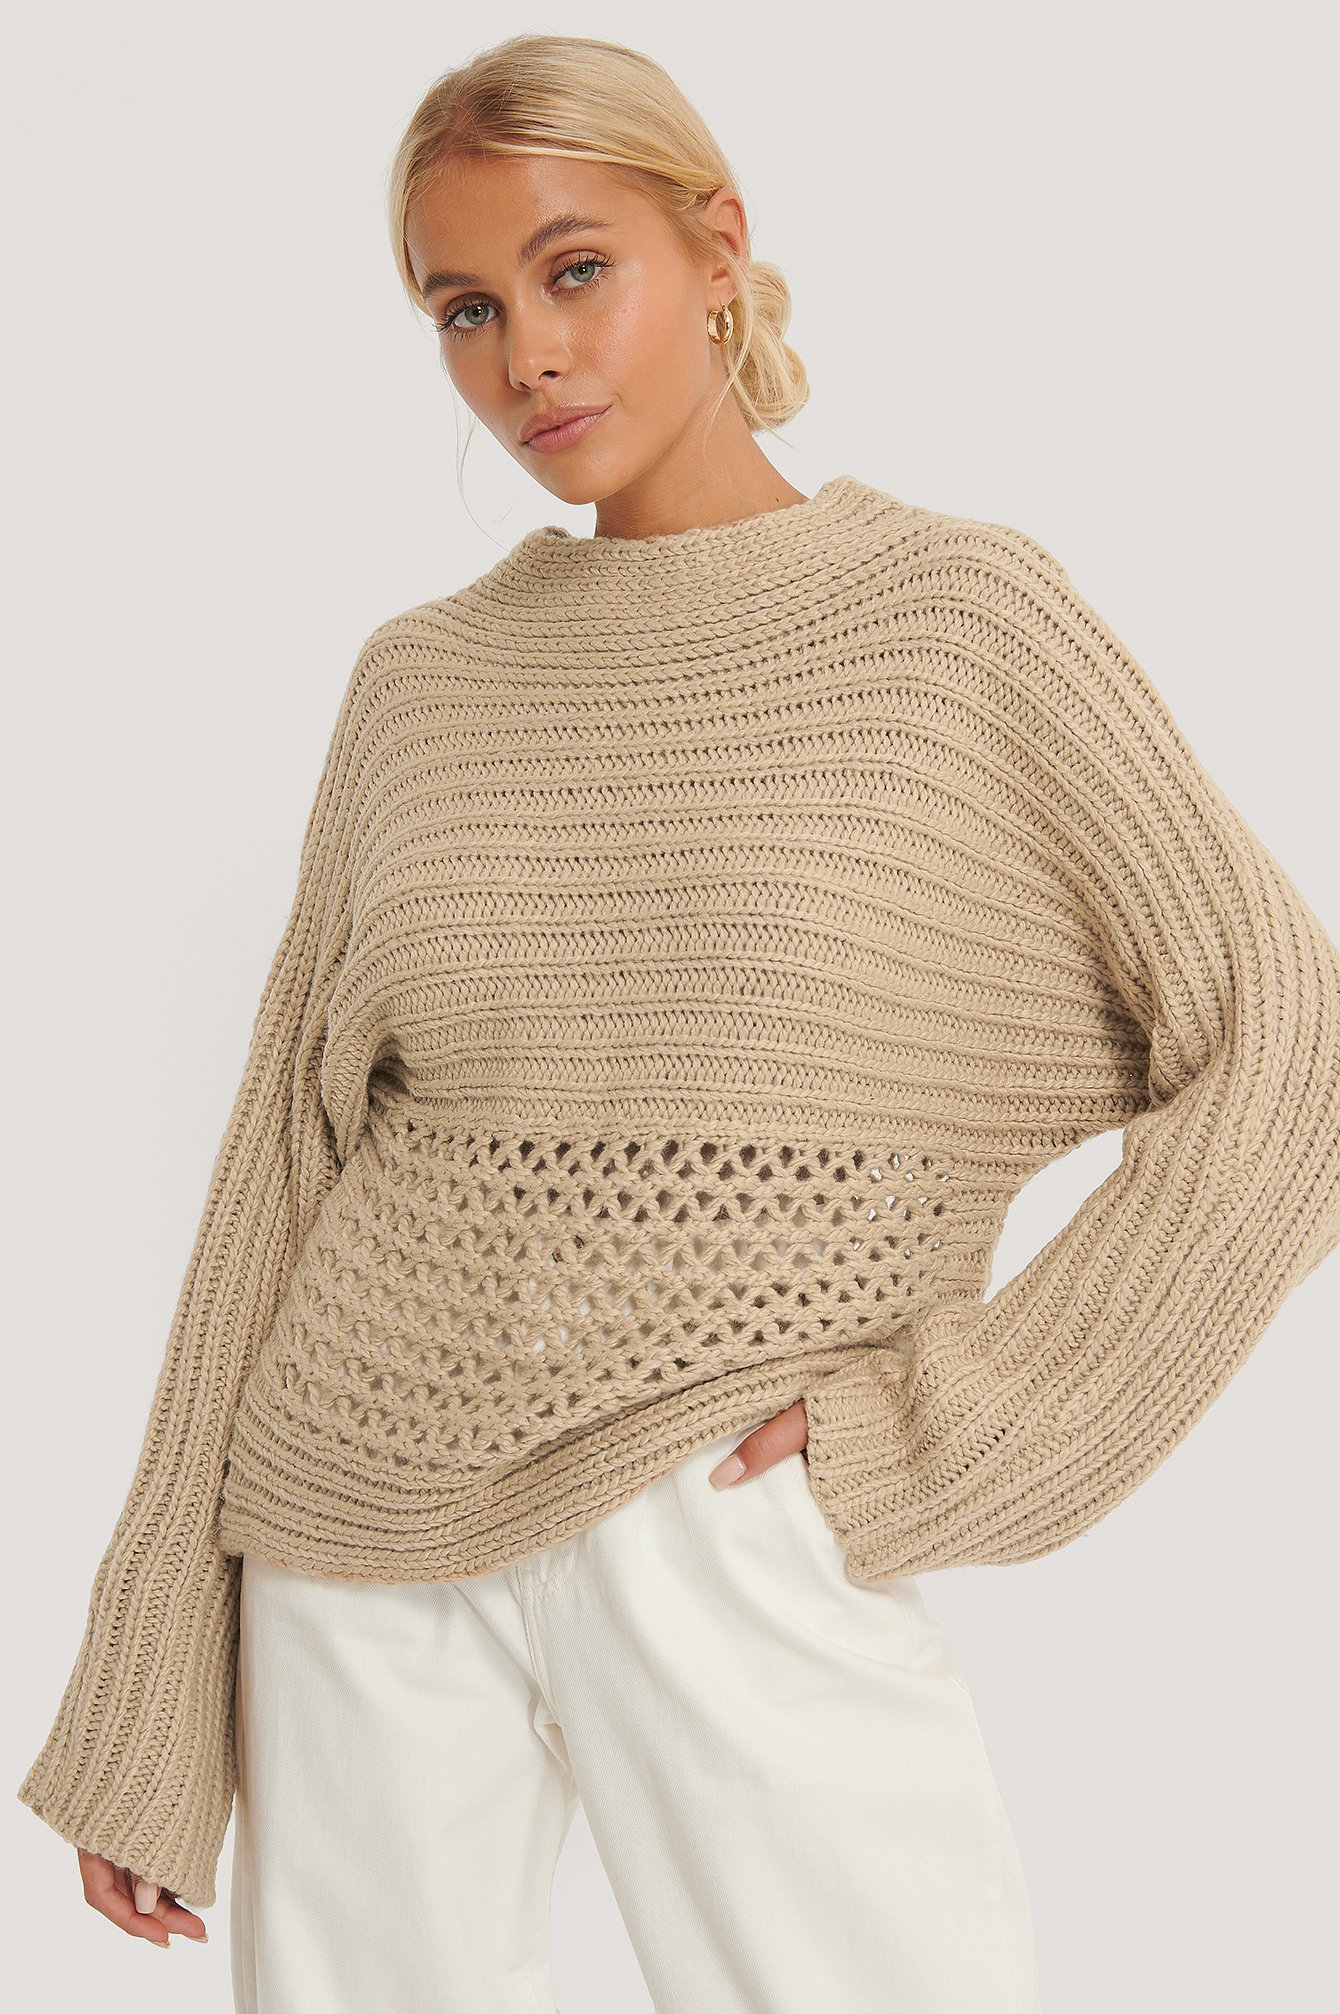 Beige Hole Detail Knitted Sweater